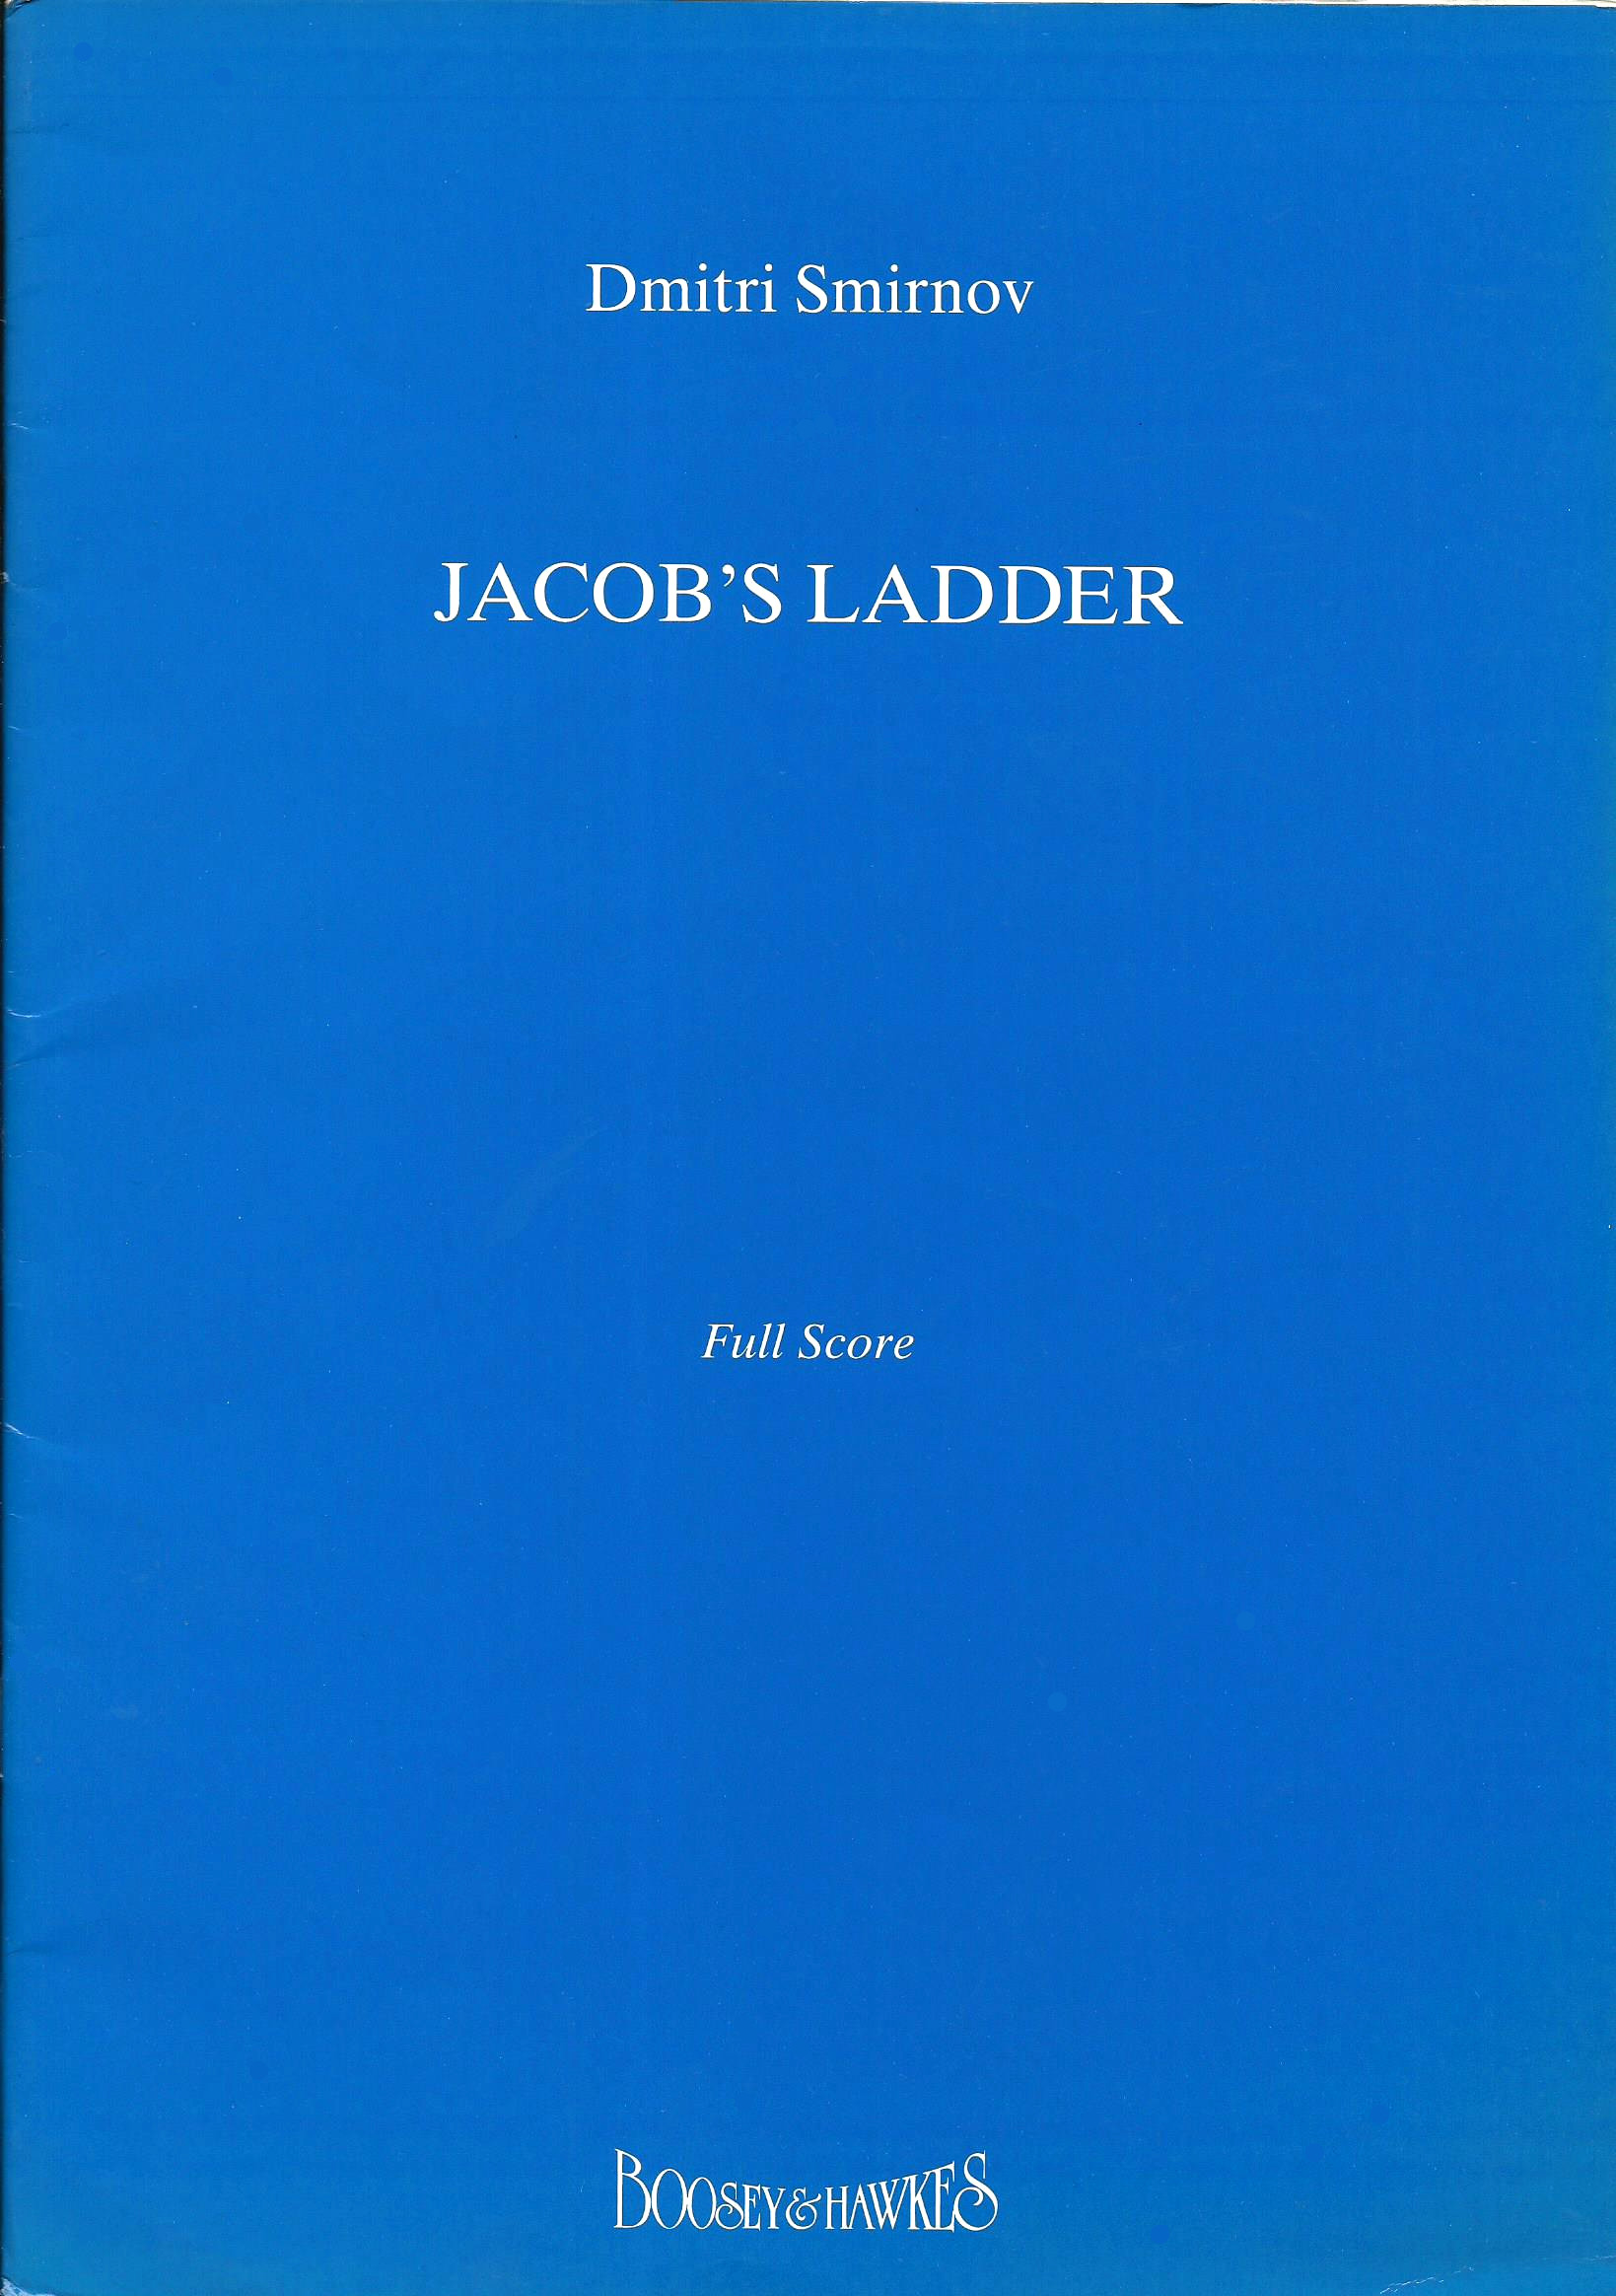 Ex. 14 DS058-Jacobs Ladder cover.jpg